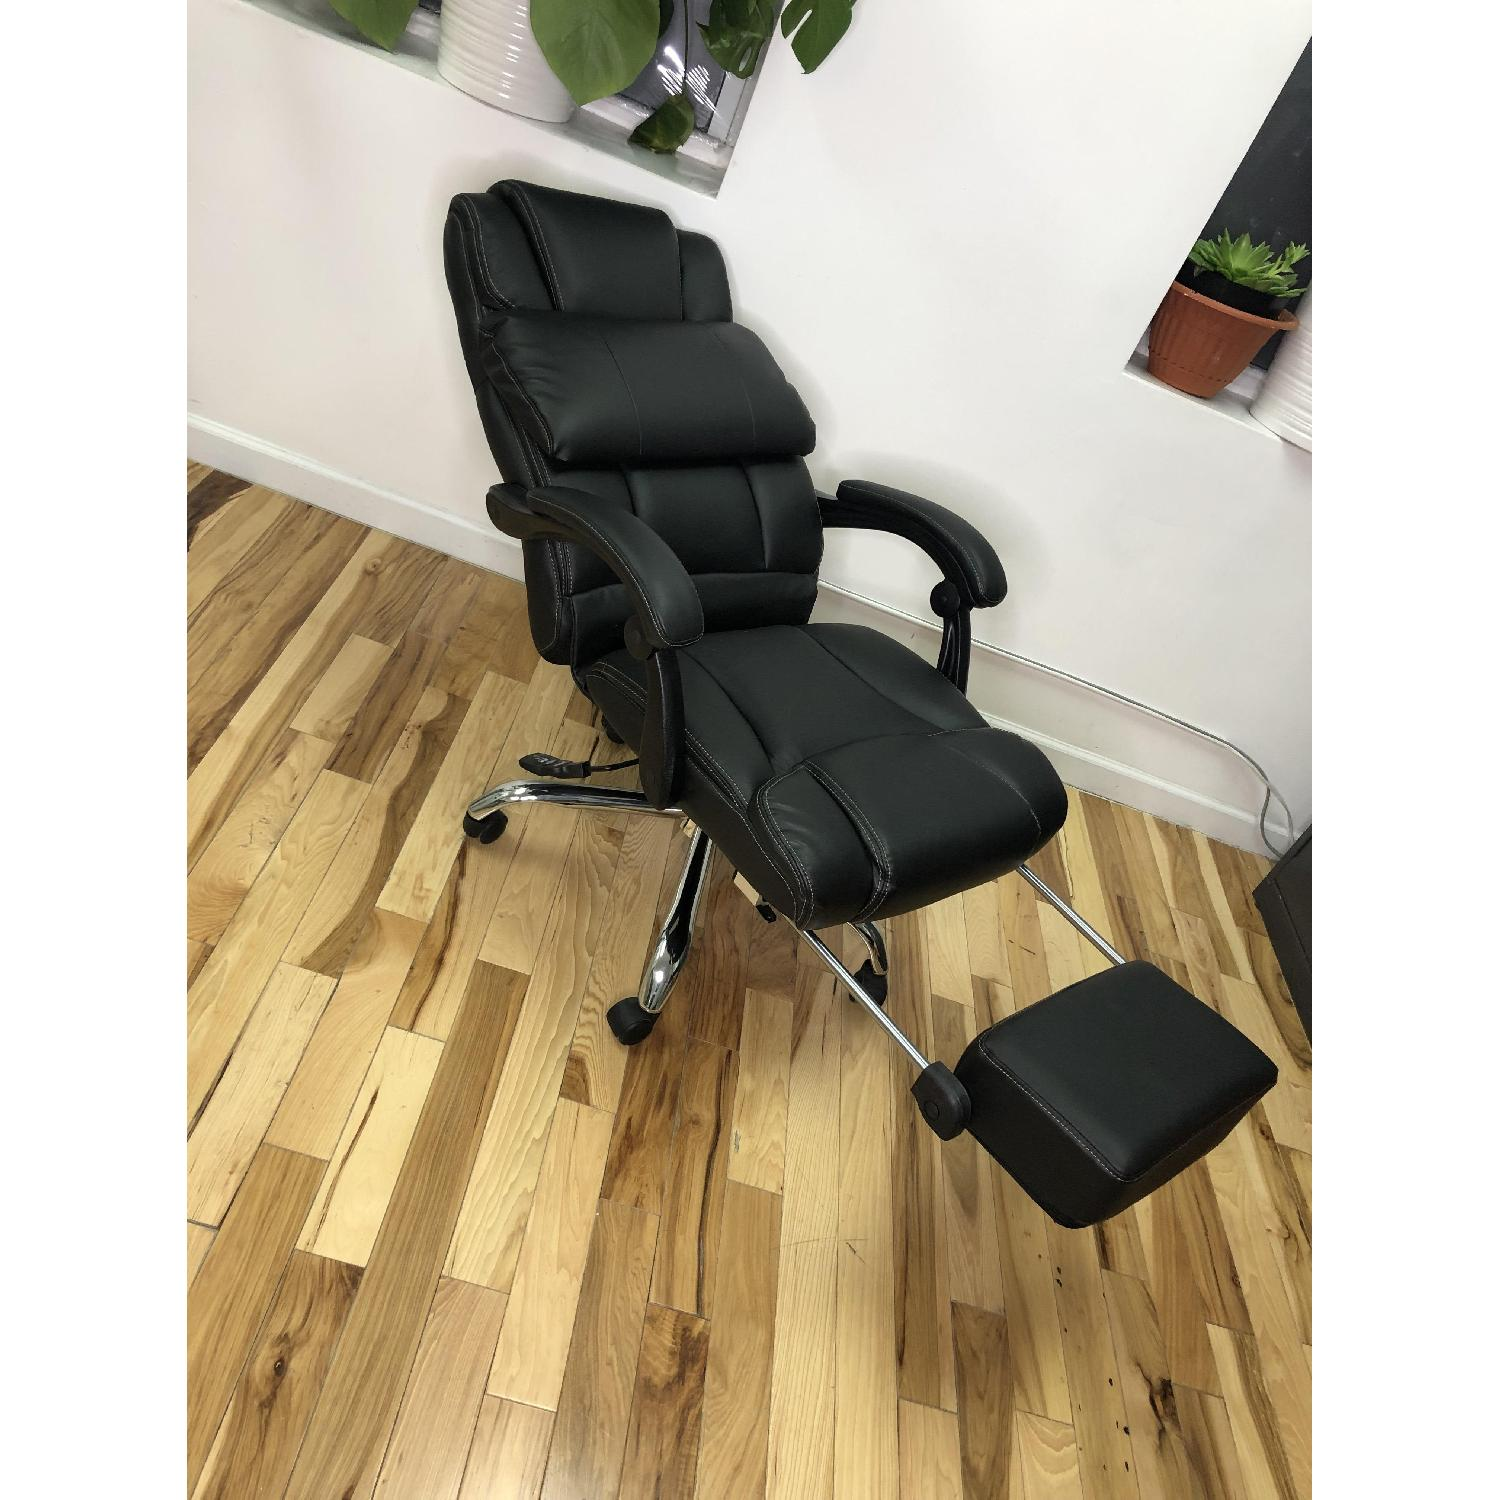 Merax Reclining Office/Gaming Chair-8